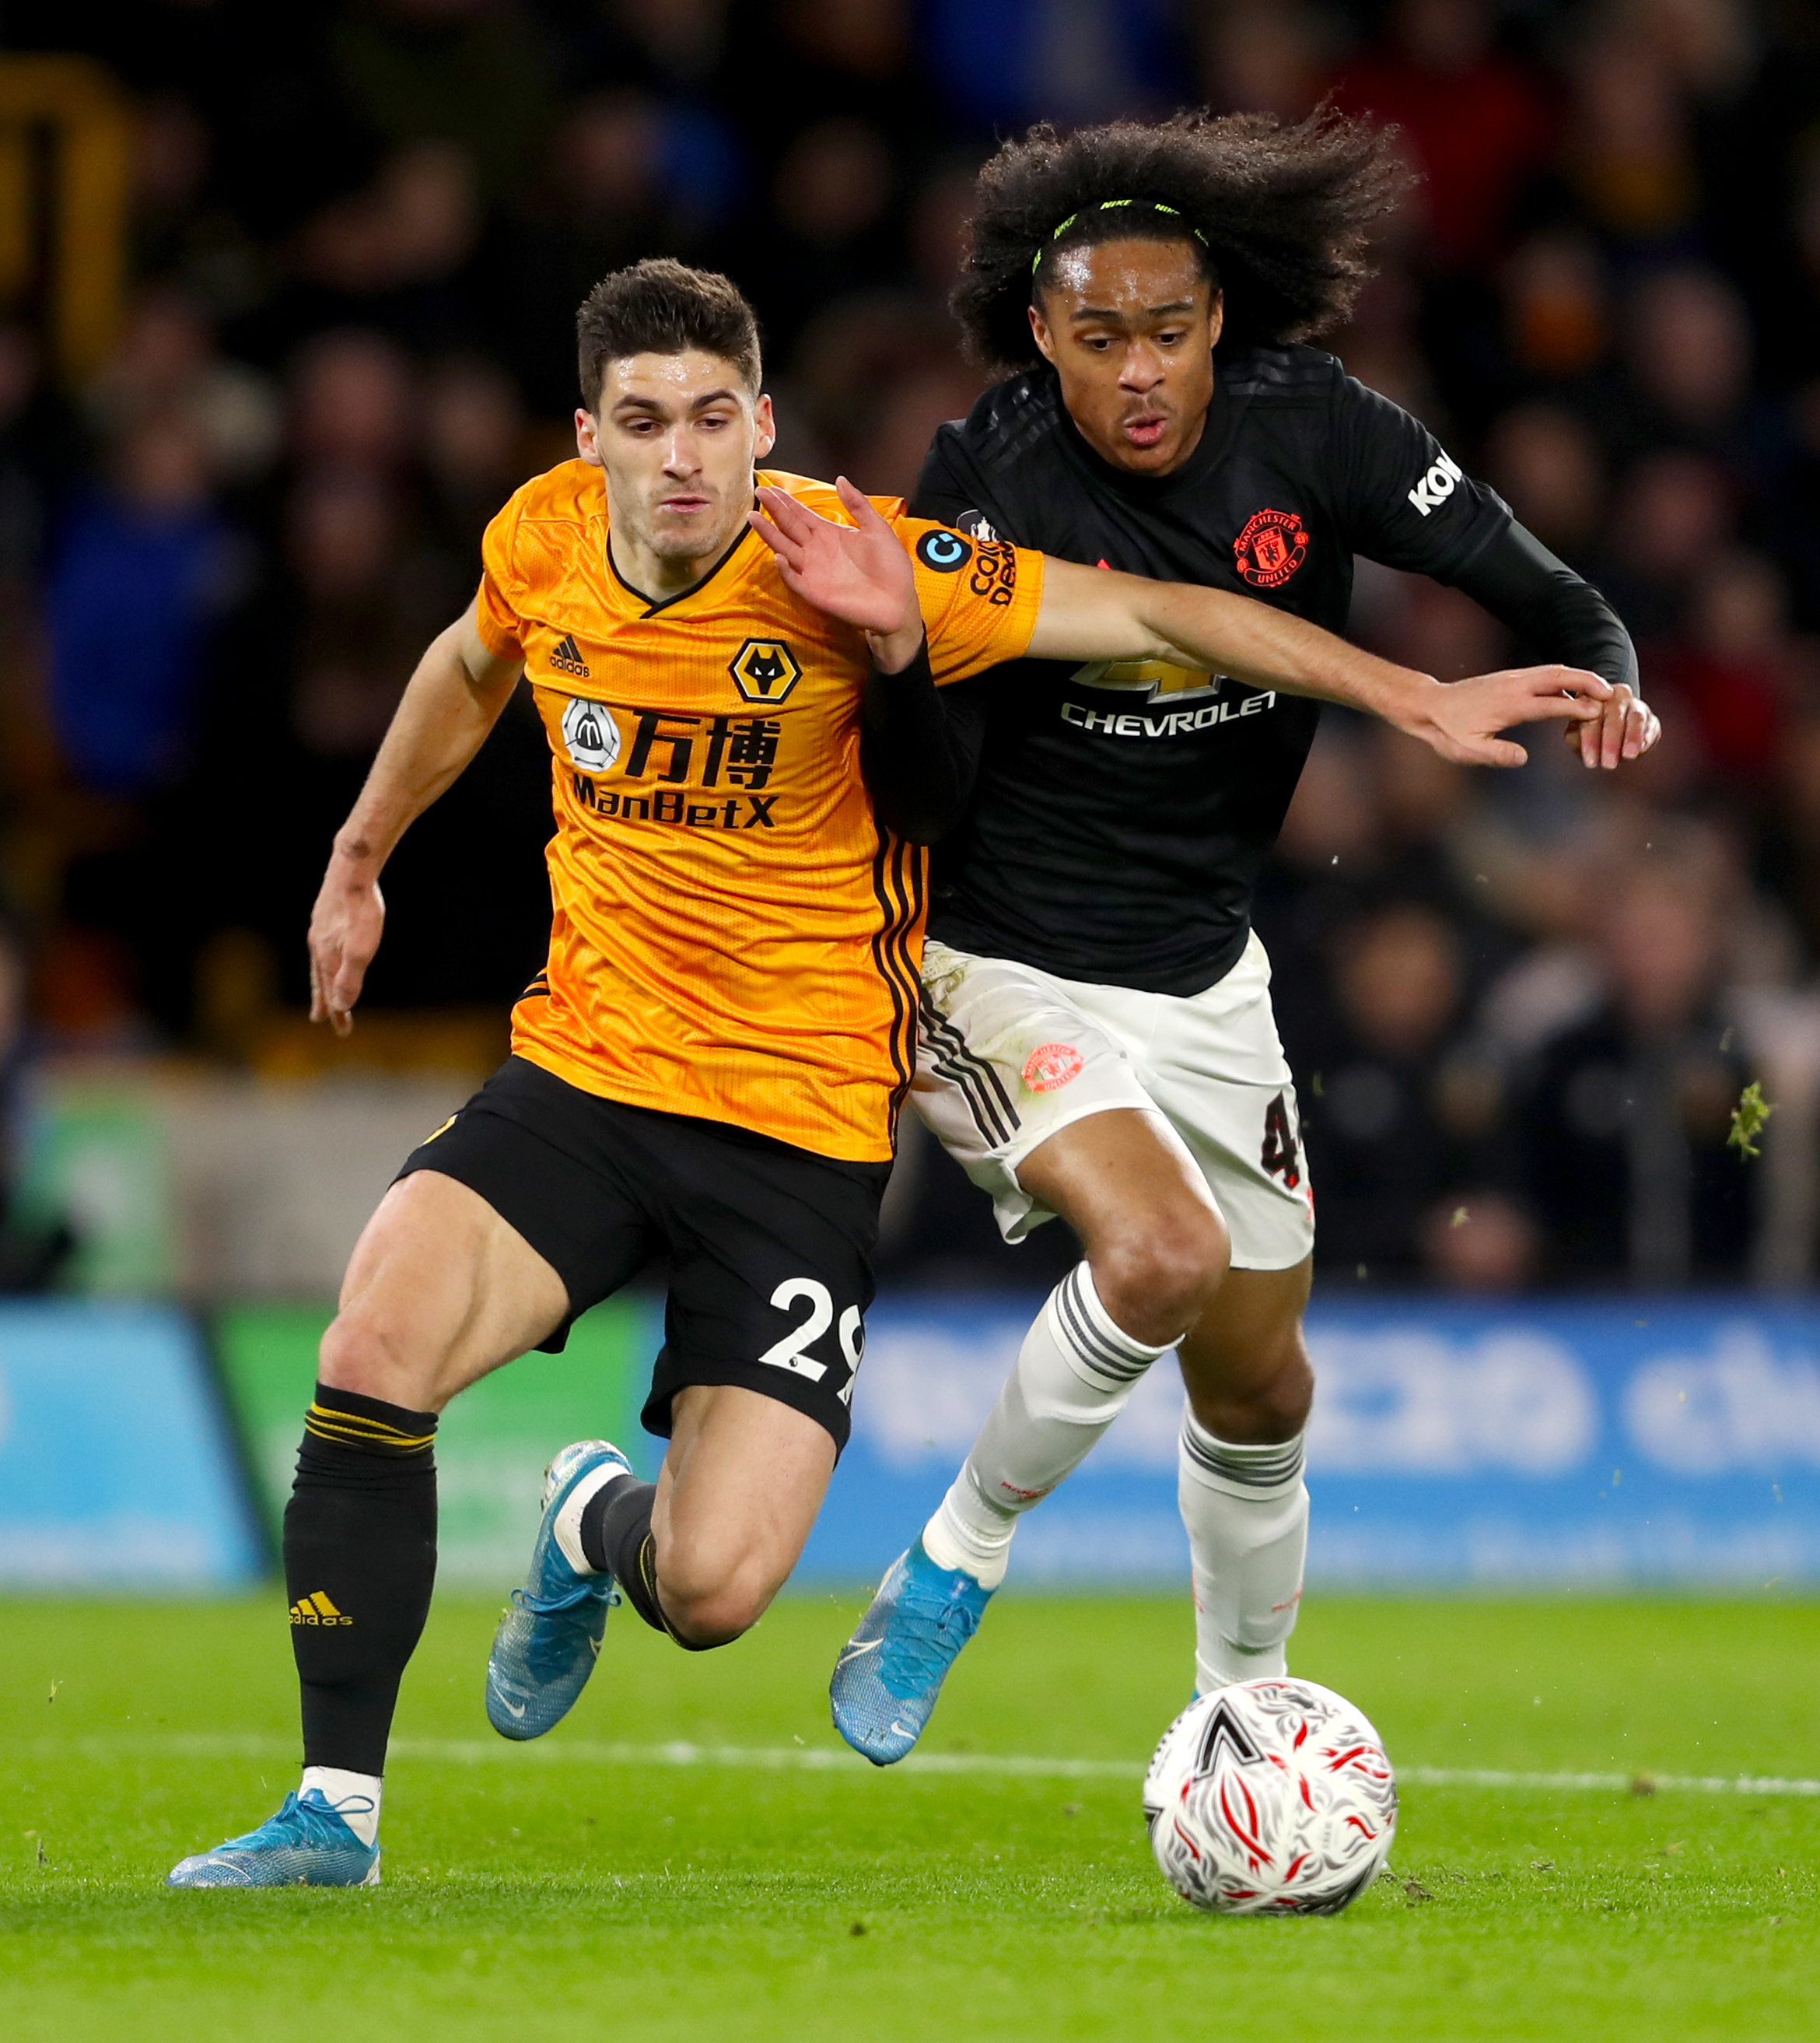 Wolverhampton Wanderers v Manchester United - FA Cup - Third Round - Molineux